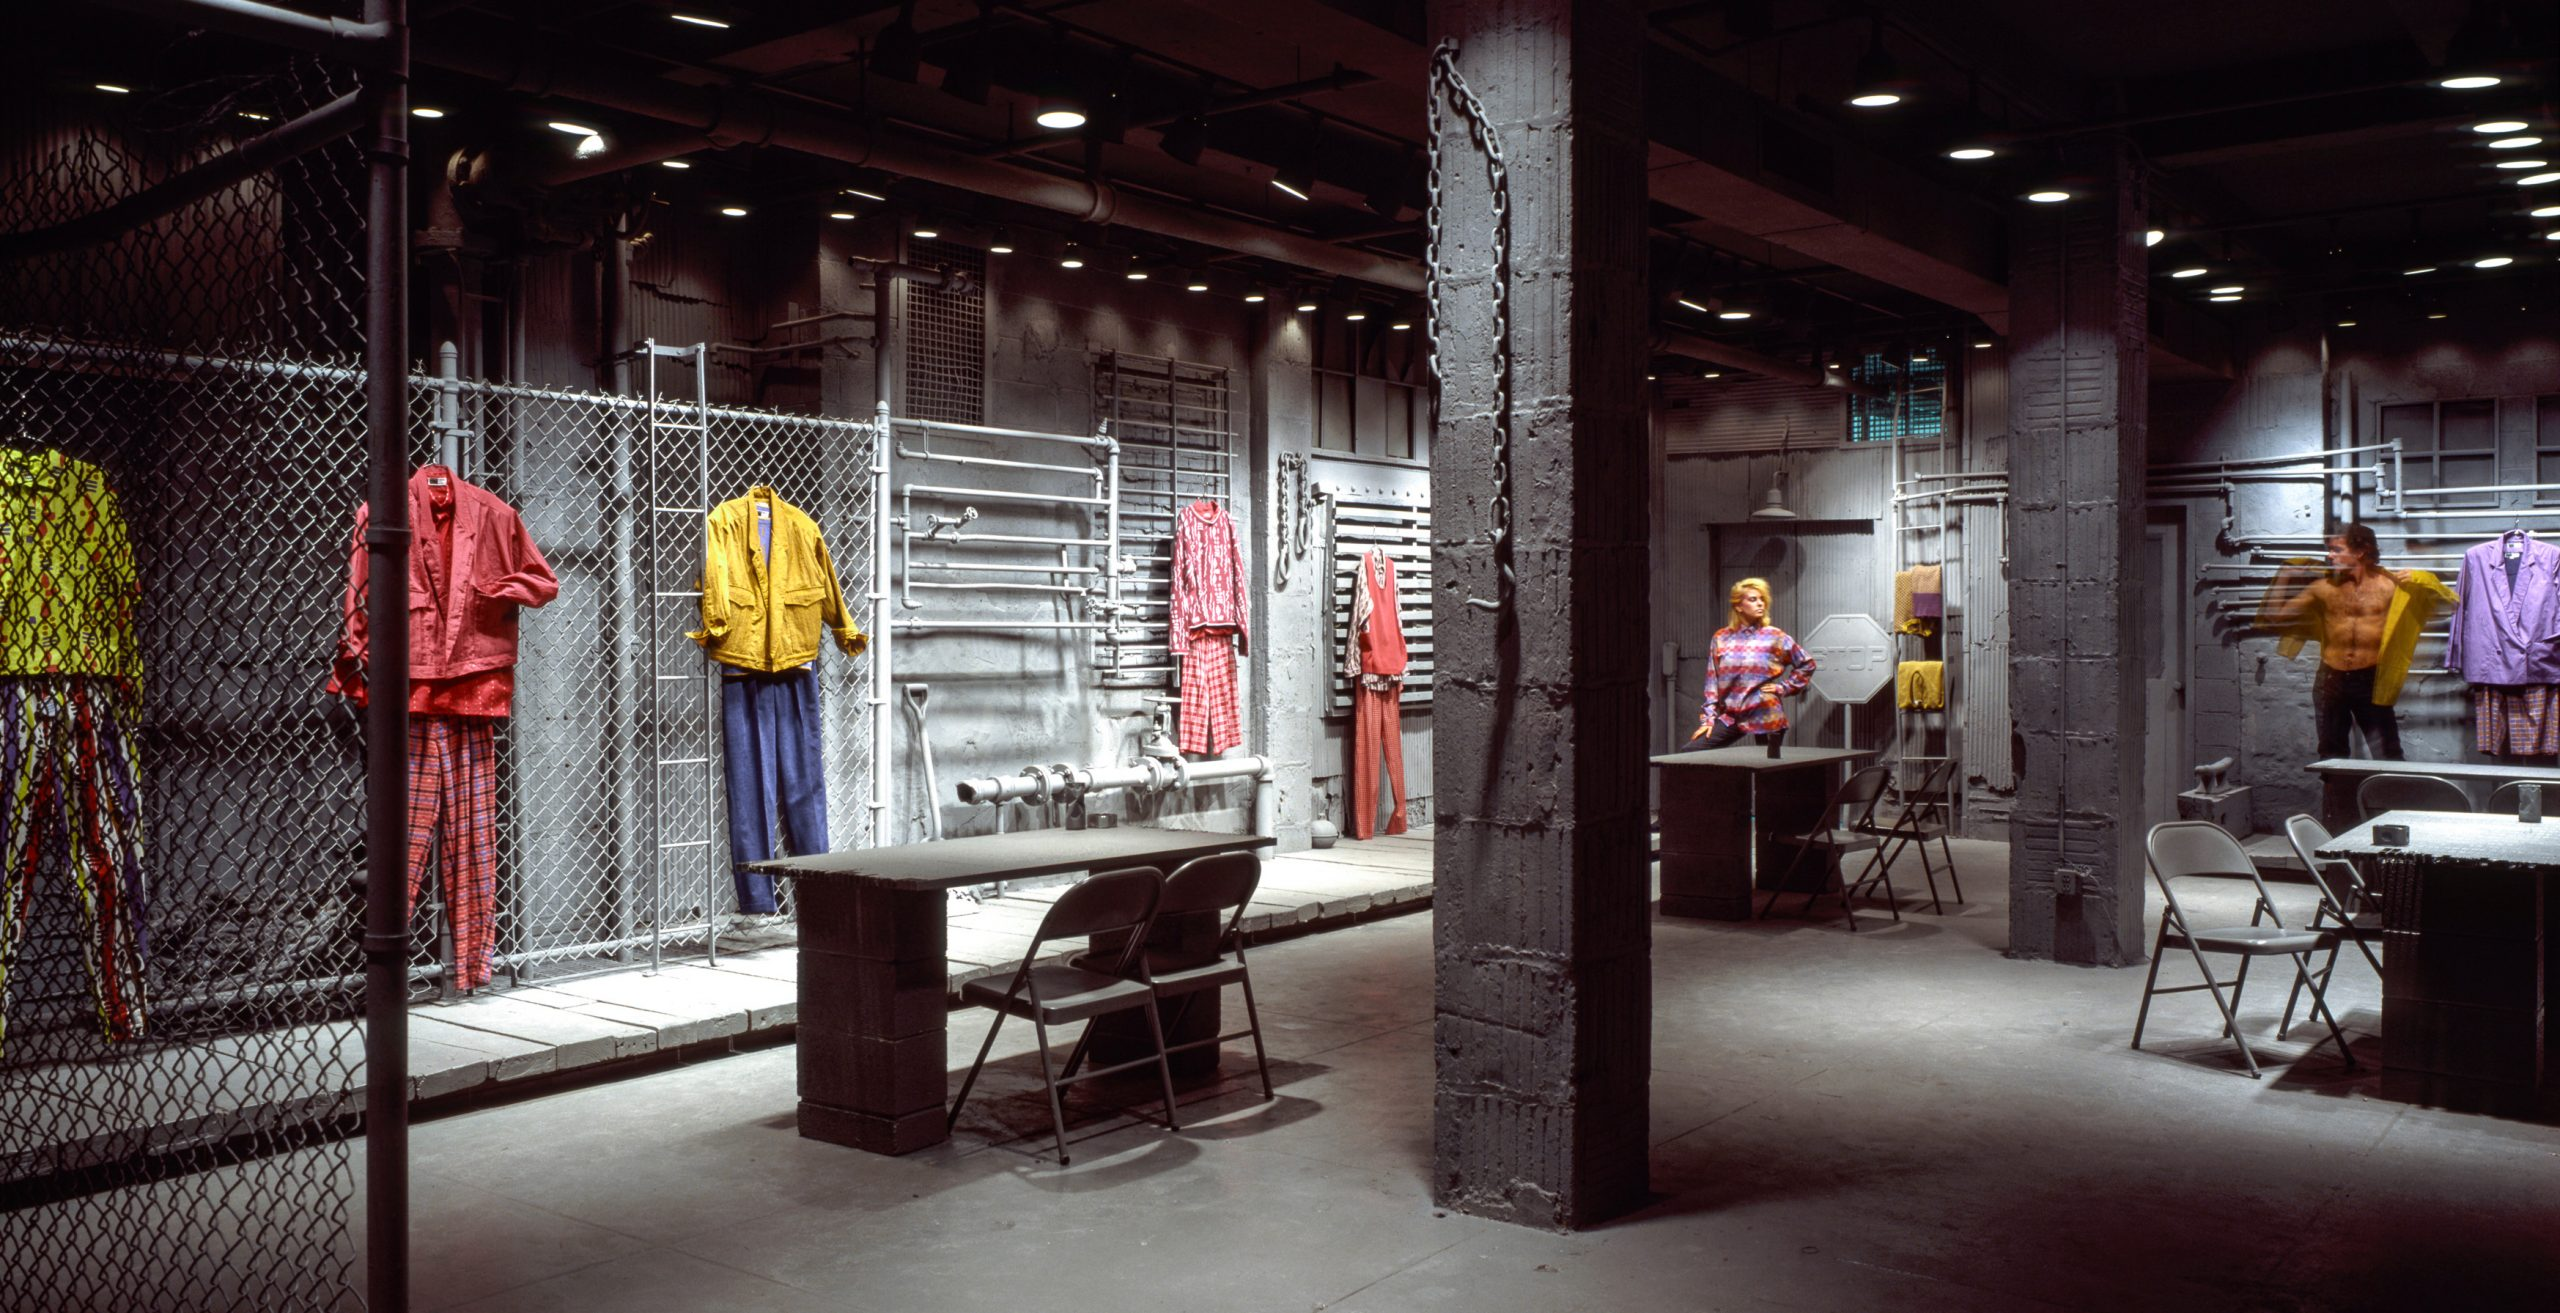 Exhibition showroom for WilliWear featuring looks hung on the walls of an industrial set